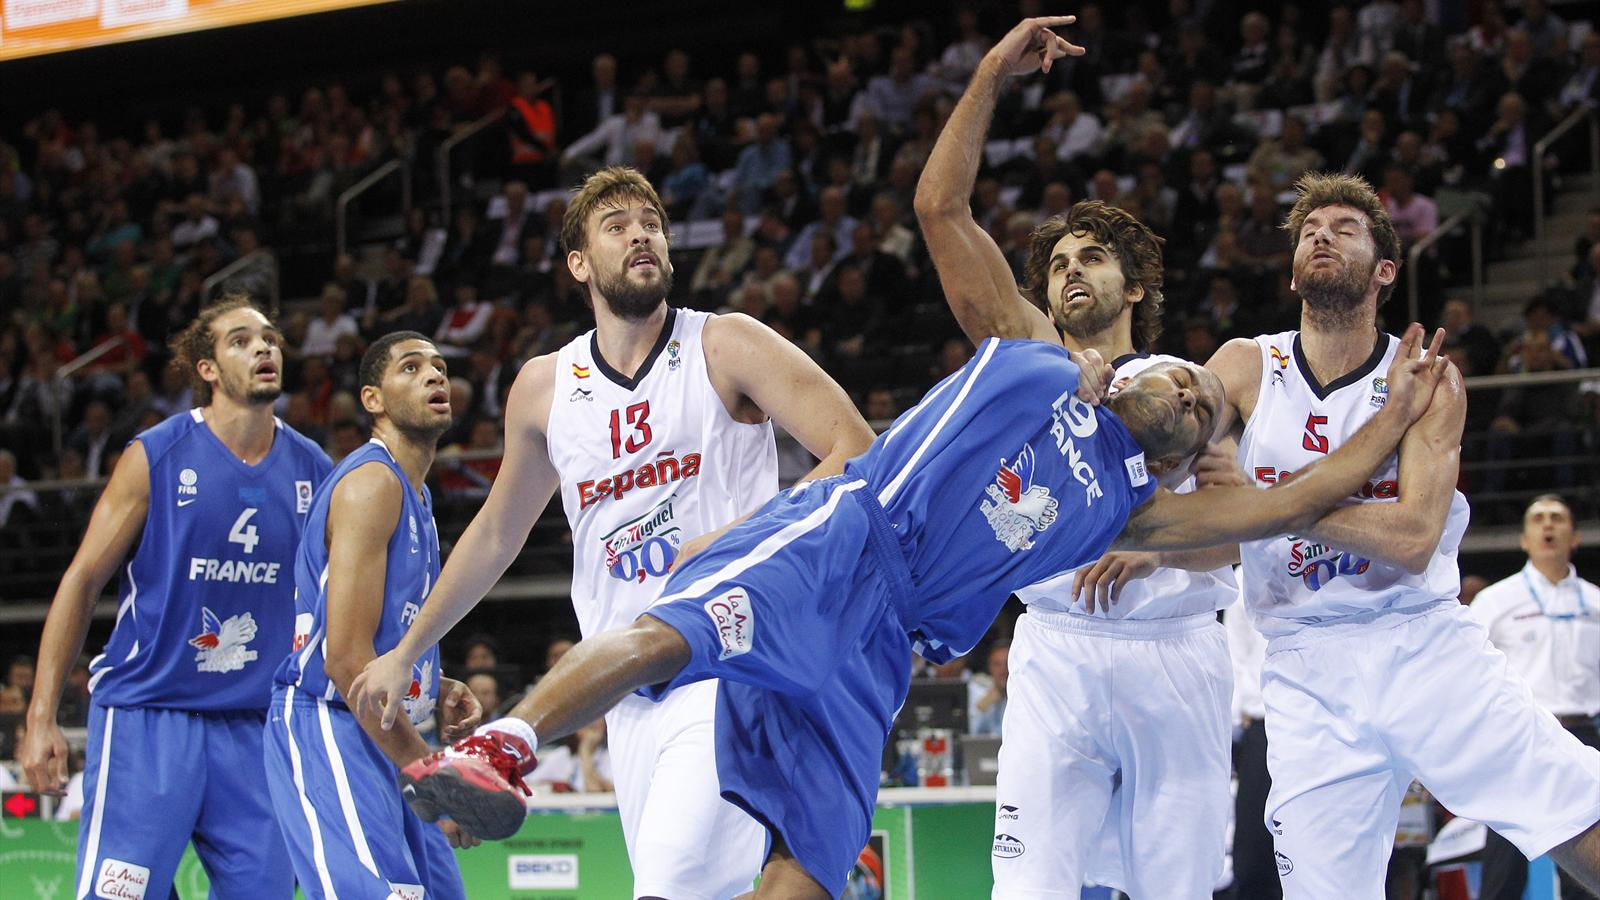 Match Basket France vs Espagne en direct live streaming